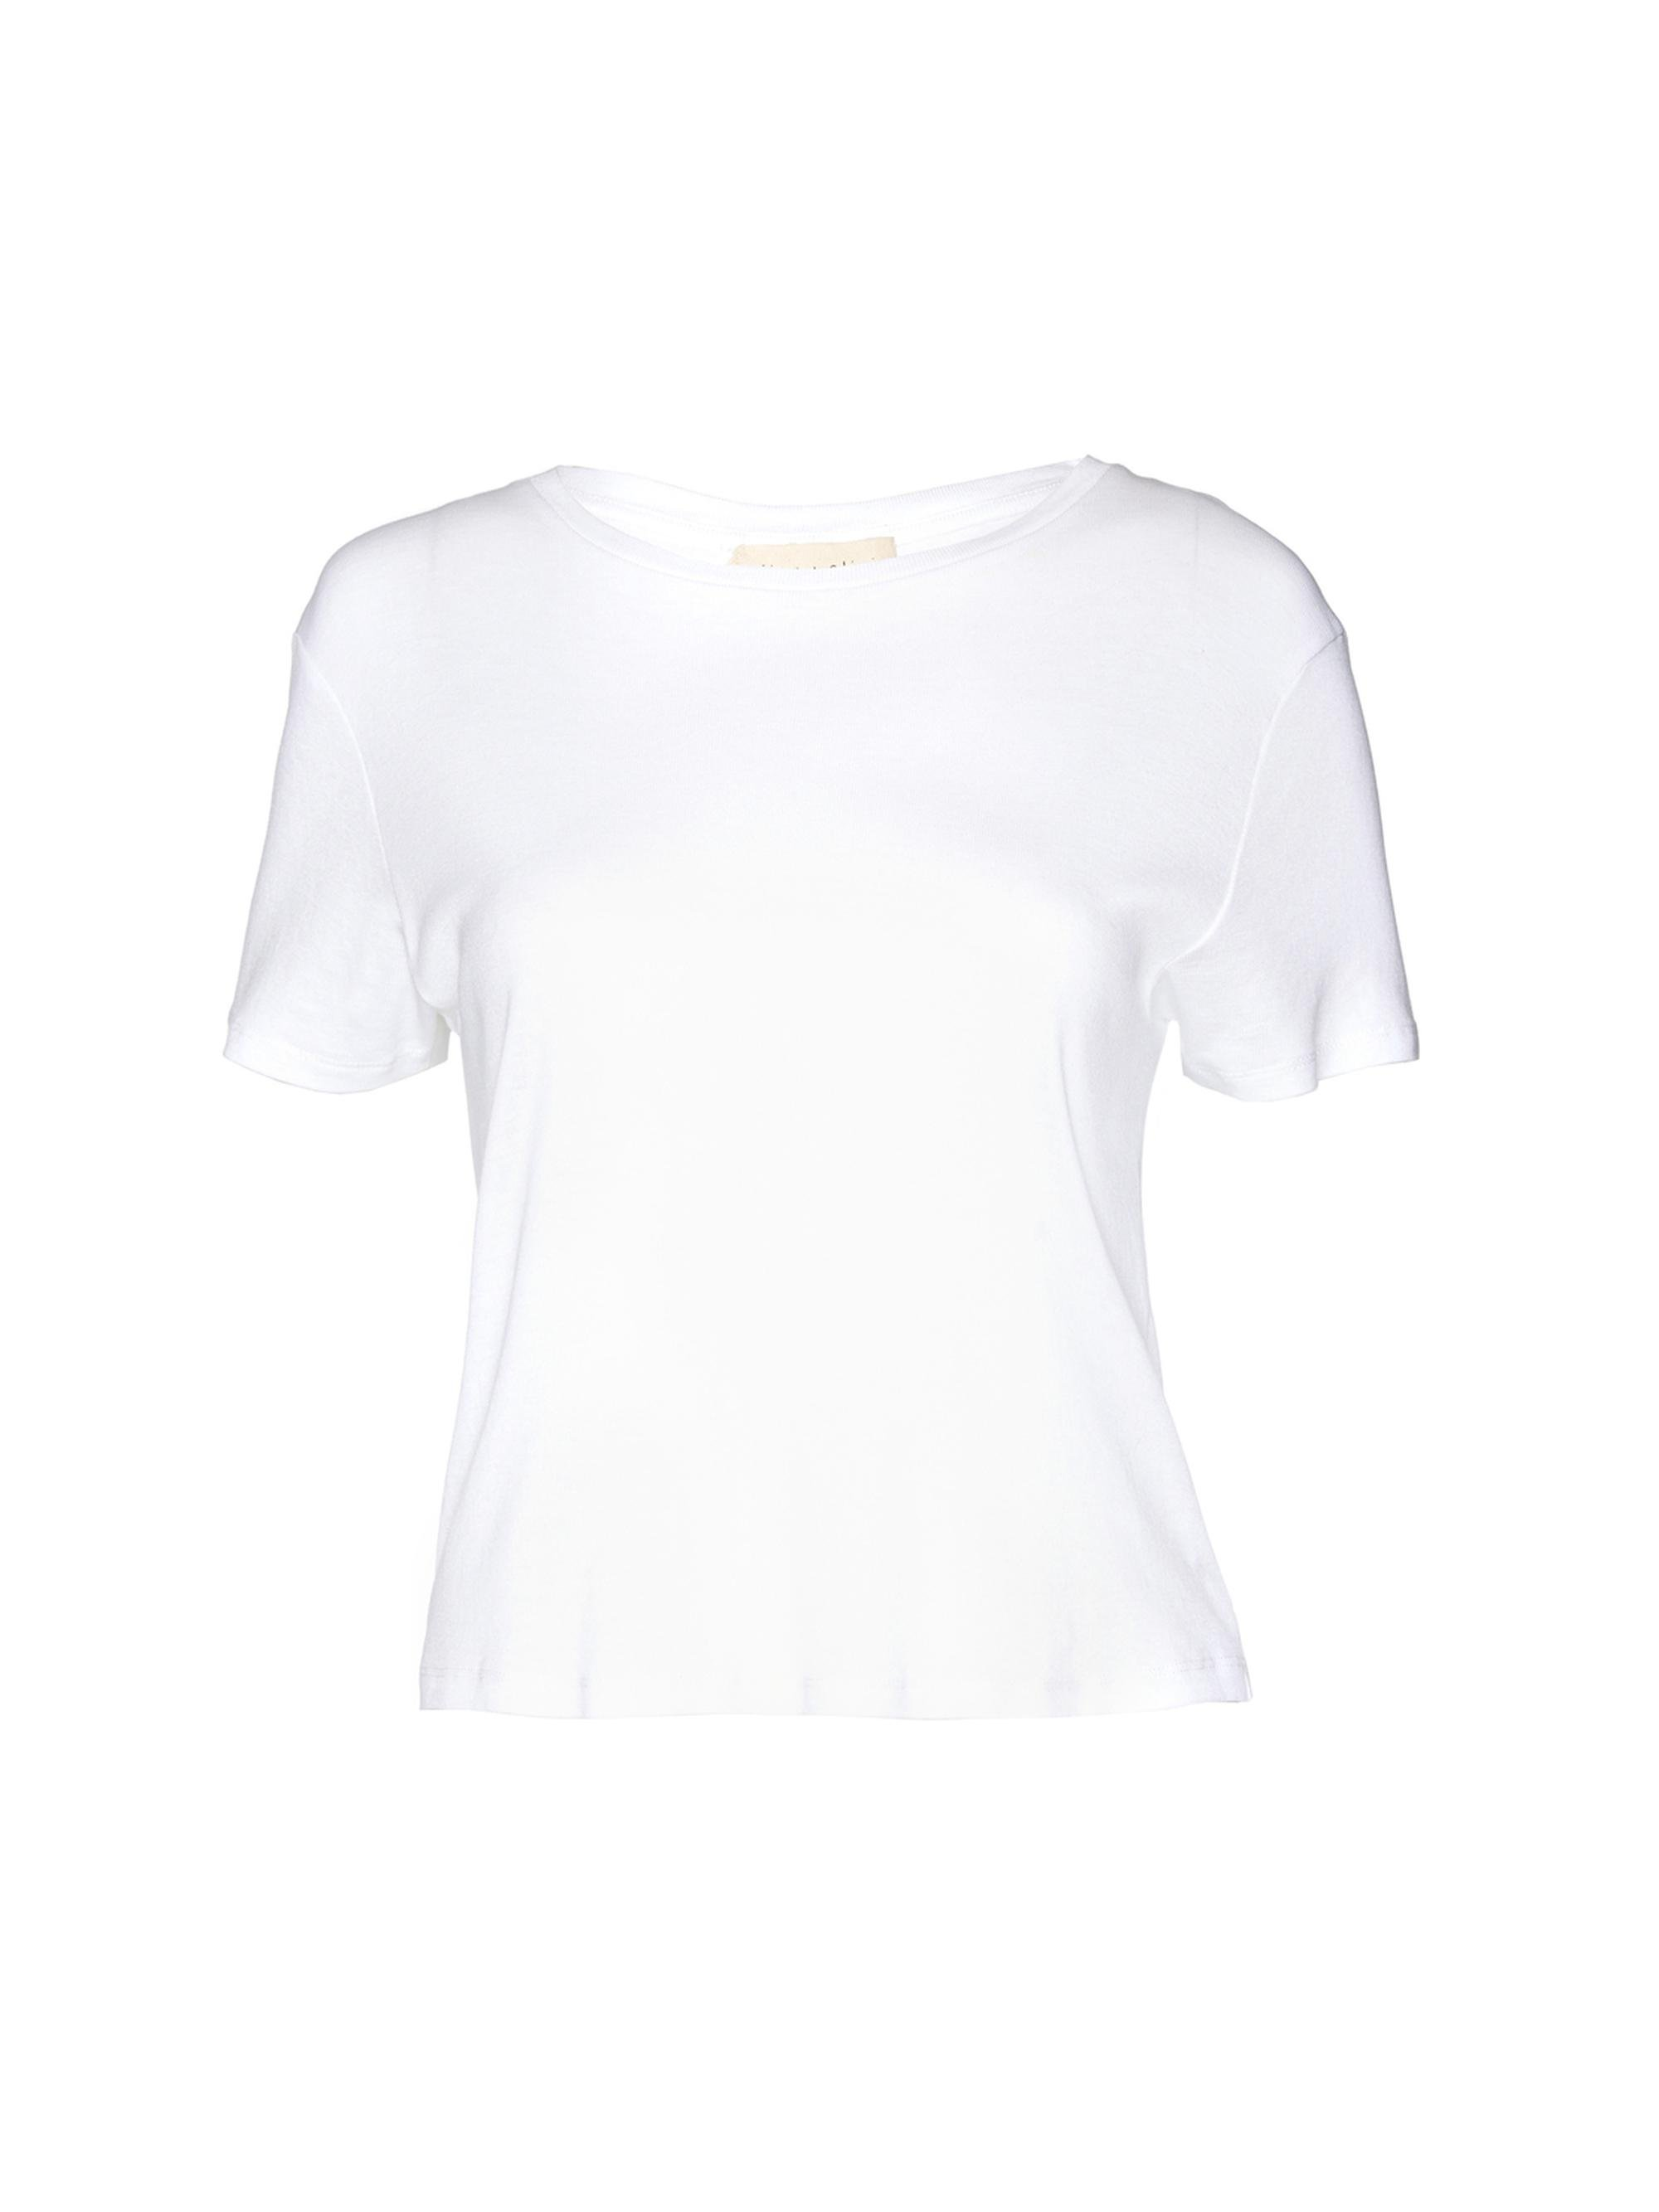 CINDY CLASSIC CROPPED TEE 7